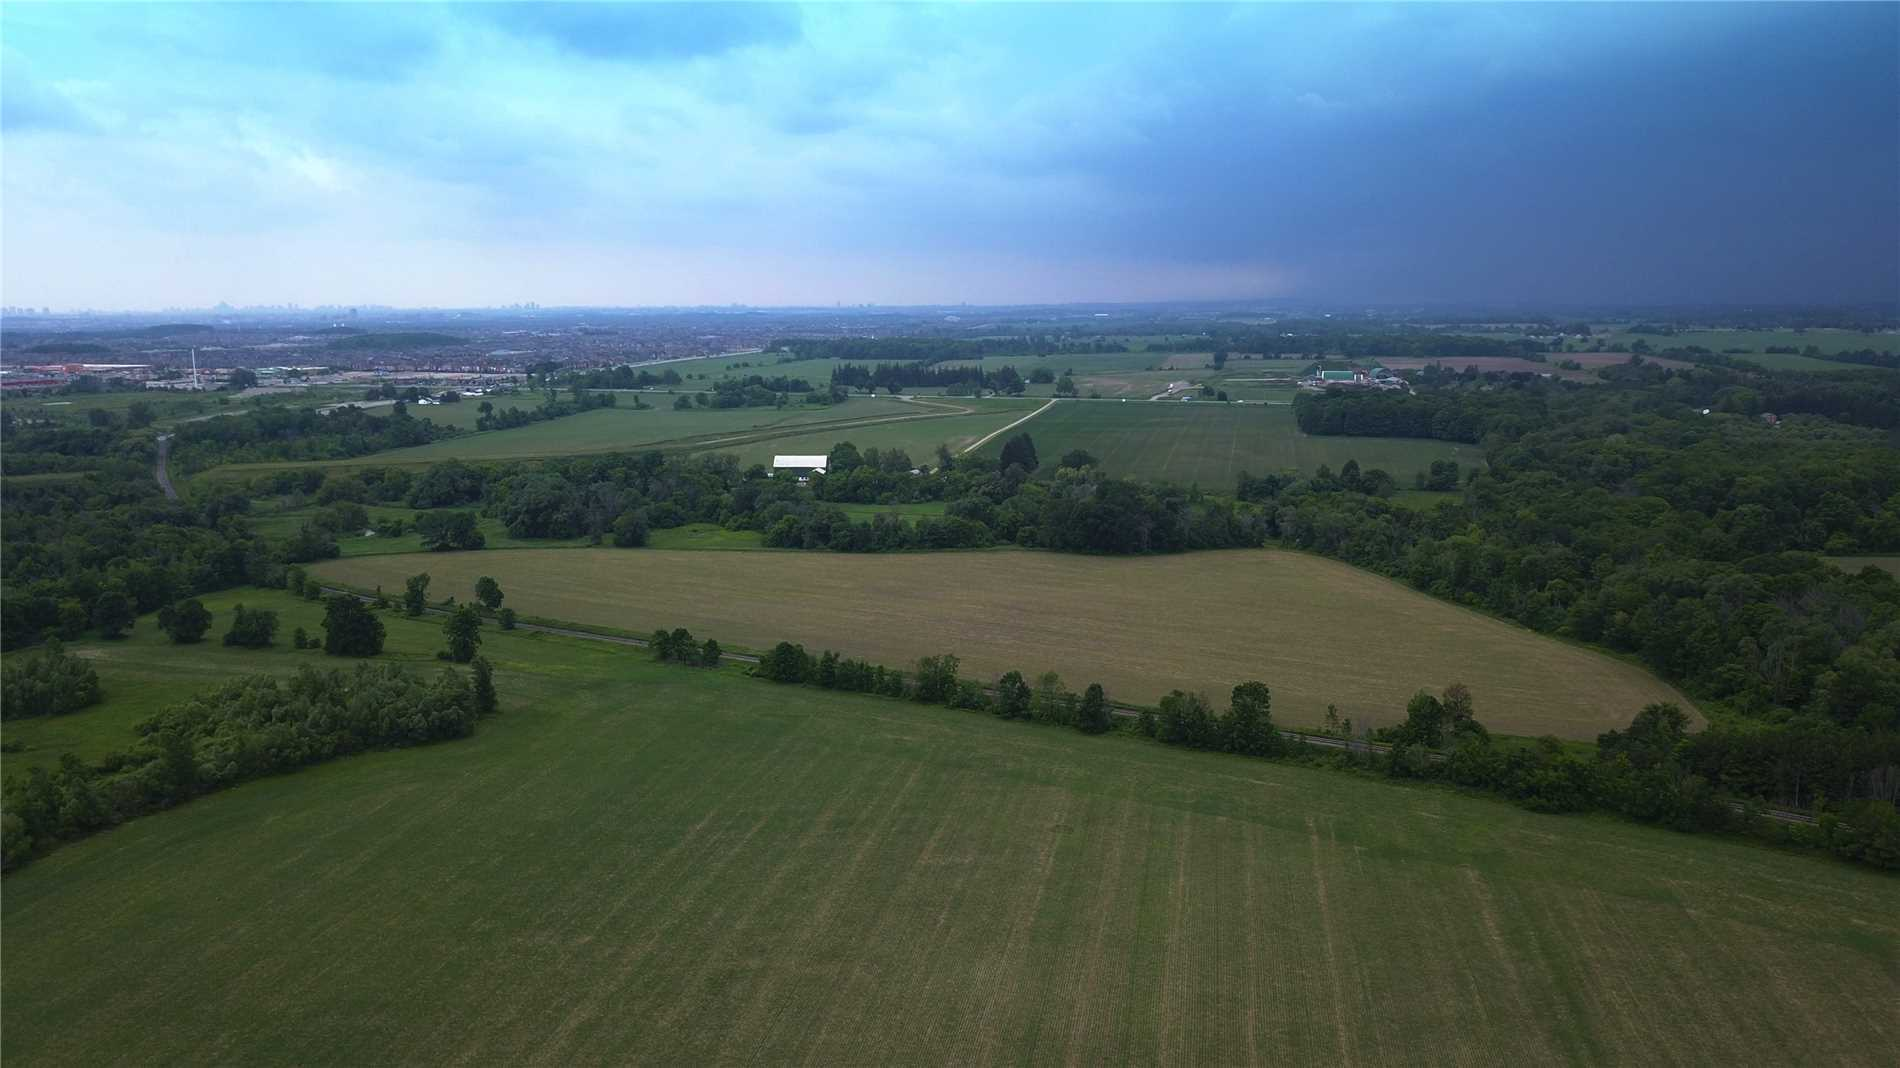 This Outstanding 130 Acre Farm Located At Hwy 48 And Major Mackenzie Drive And Next To The Official Plan Of Markham, Ontario. Property Has Potential For Natural Severance! Property Has Outstanding Tableland. Stunning Forest, Peaceful Rouge River! Vendor Take Back Mortgage Available To Qualified Buyer.